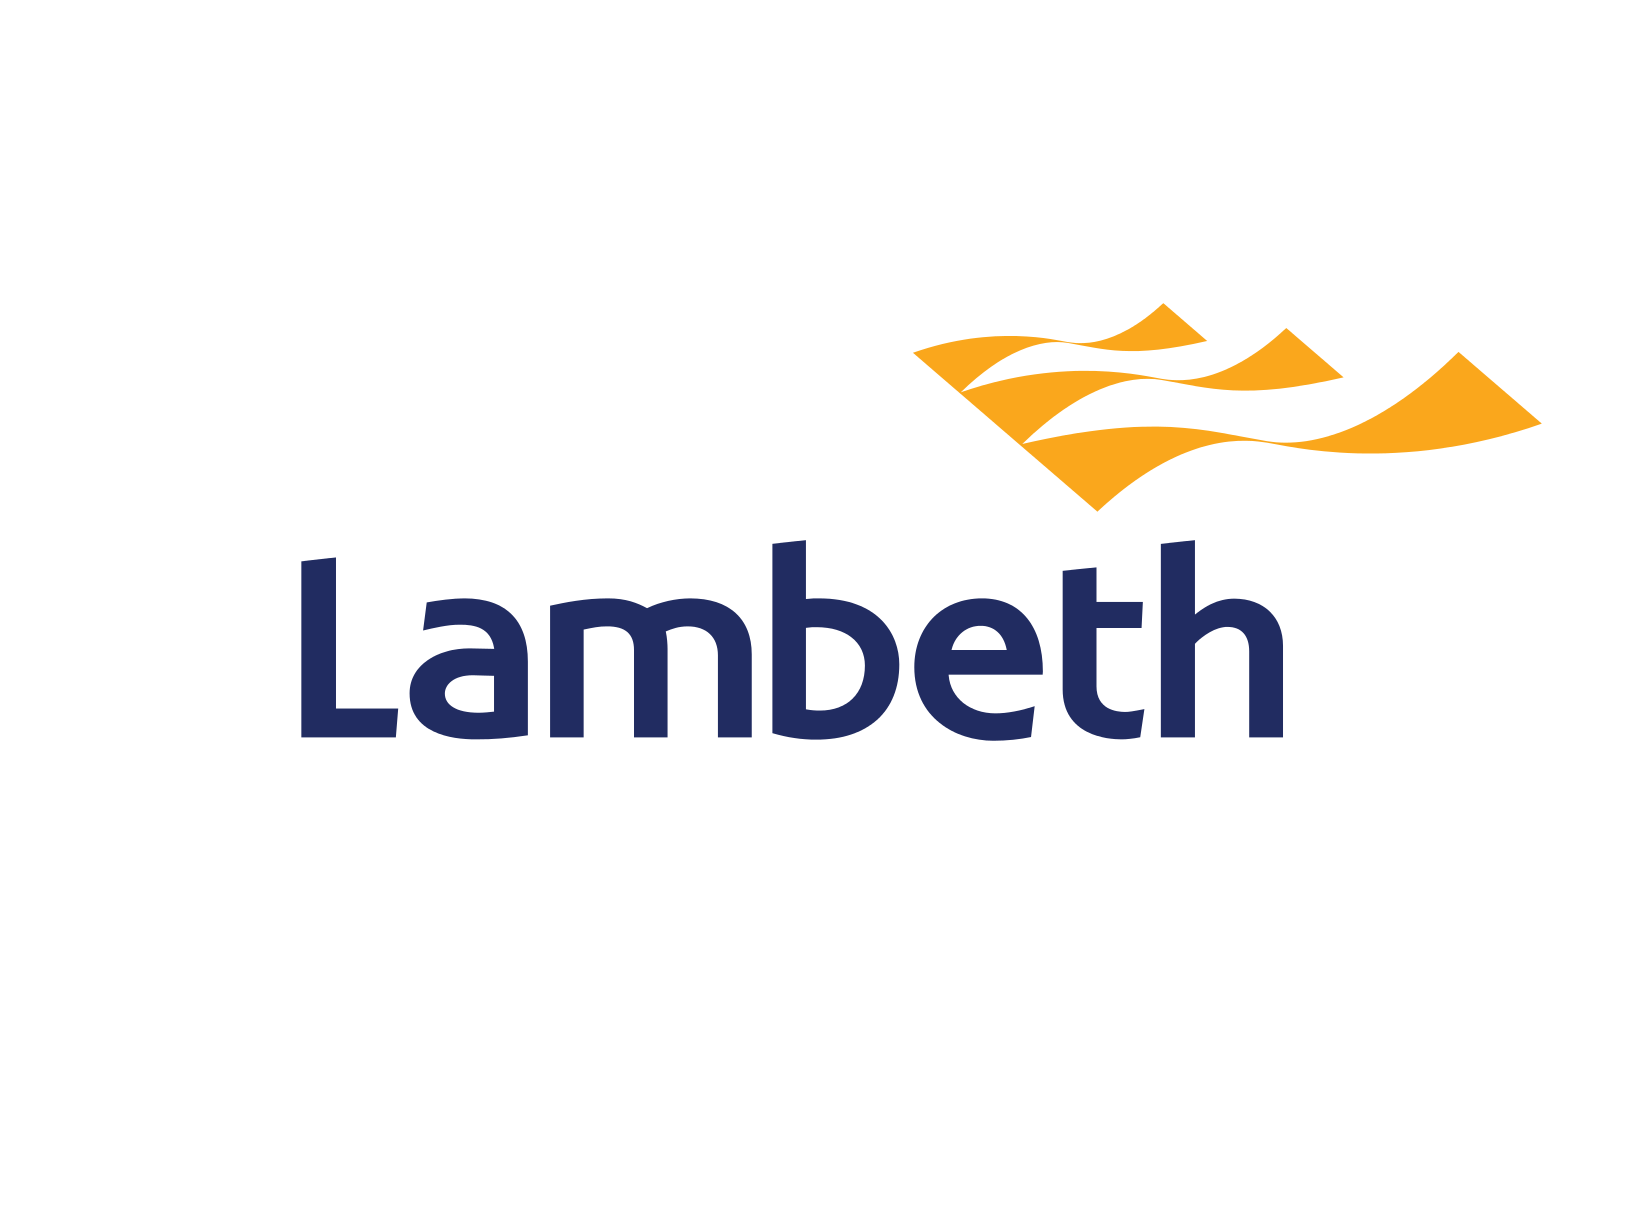 London Borough of Lambeth | Colwyn F